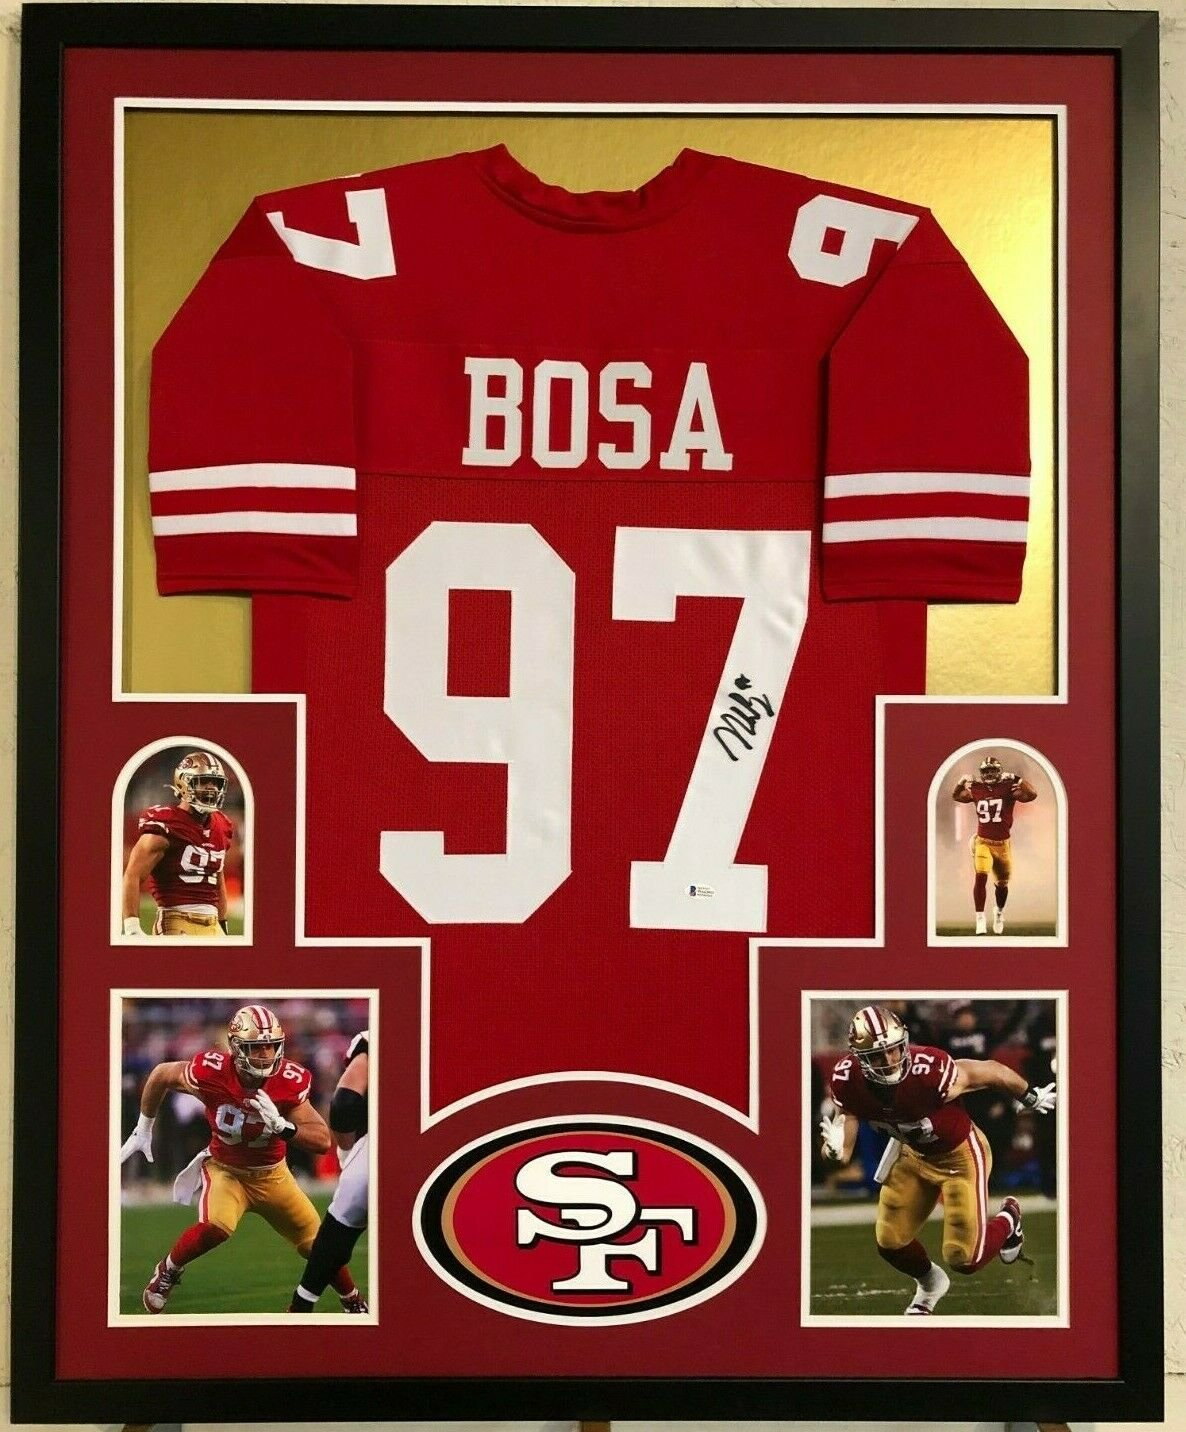 Nick Bosa Autographed Signed San Francisco 49ers Framed Jersey BECKETT